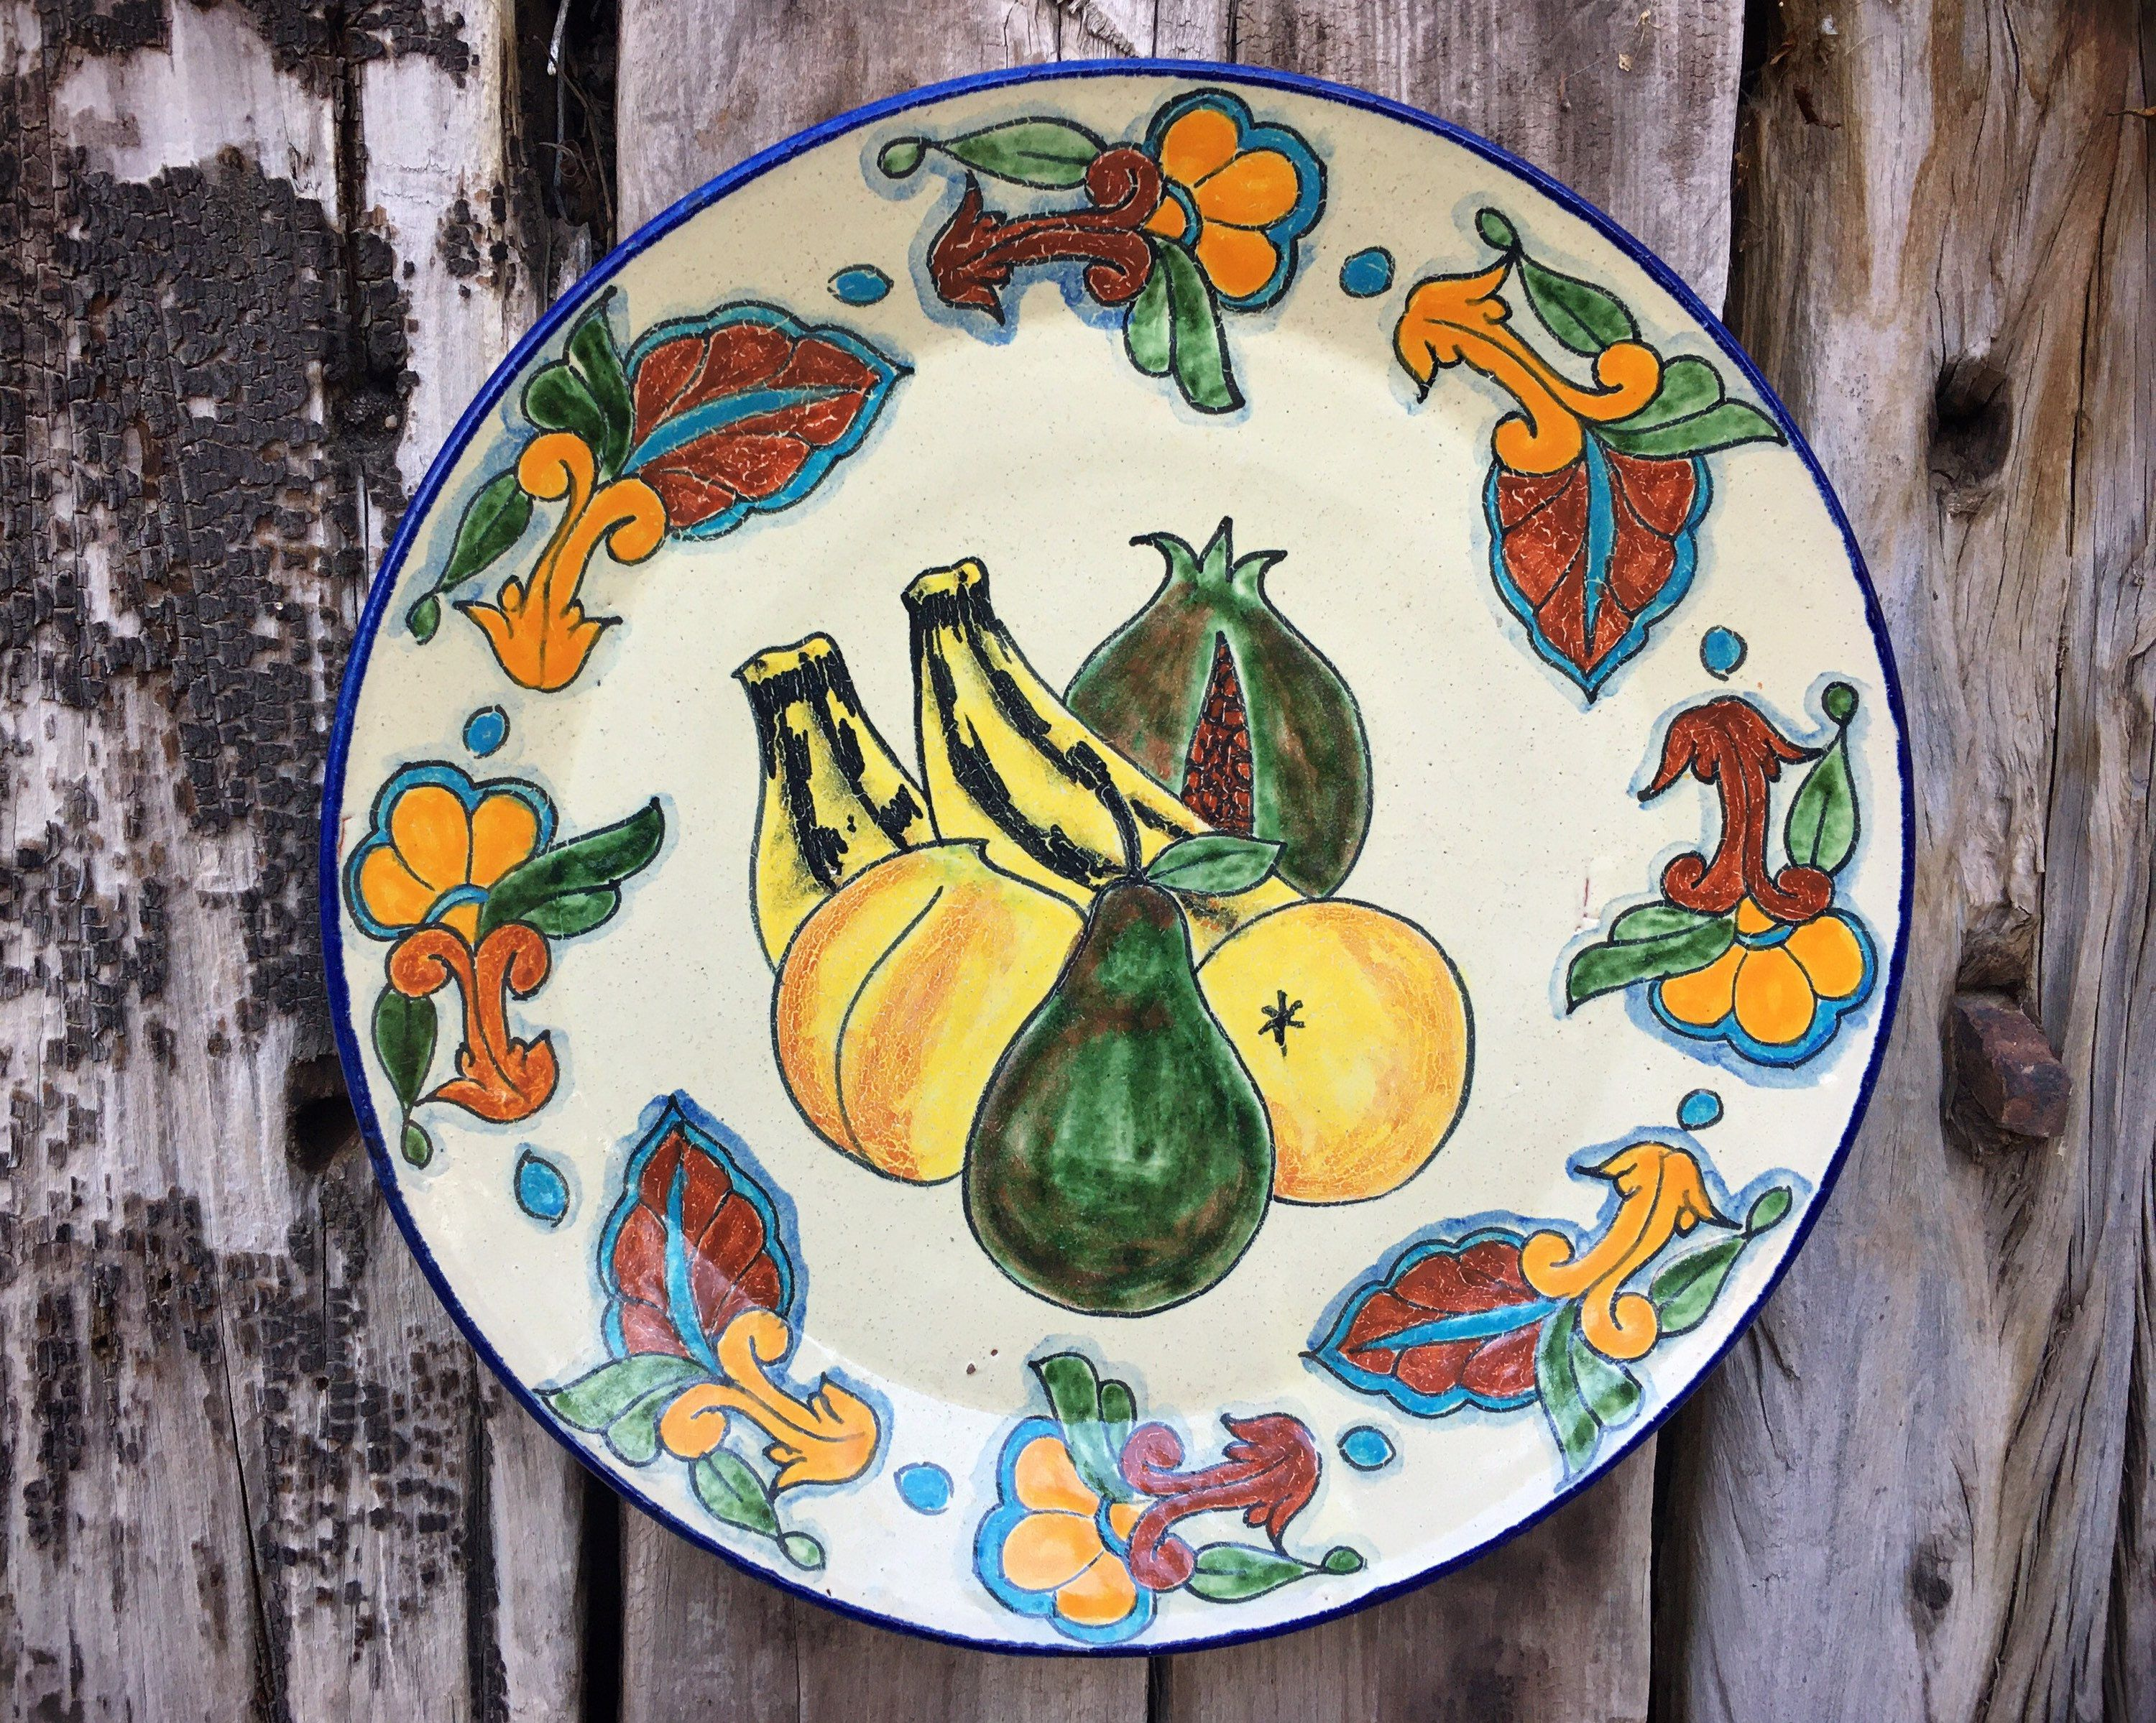 Talavera Plate Wall Hanging With Fruit Design Mexican Pottery Folk Art Rustic Southwestern Home In 2020 Mexican Pottery Talavera Plates On Wall